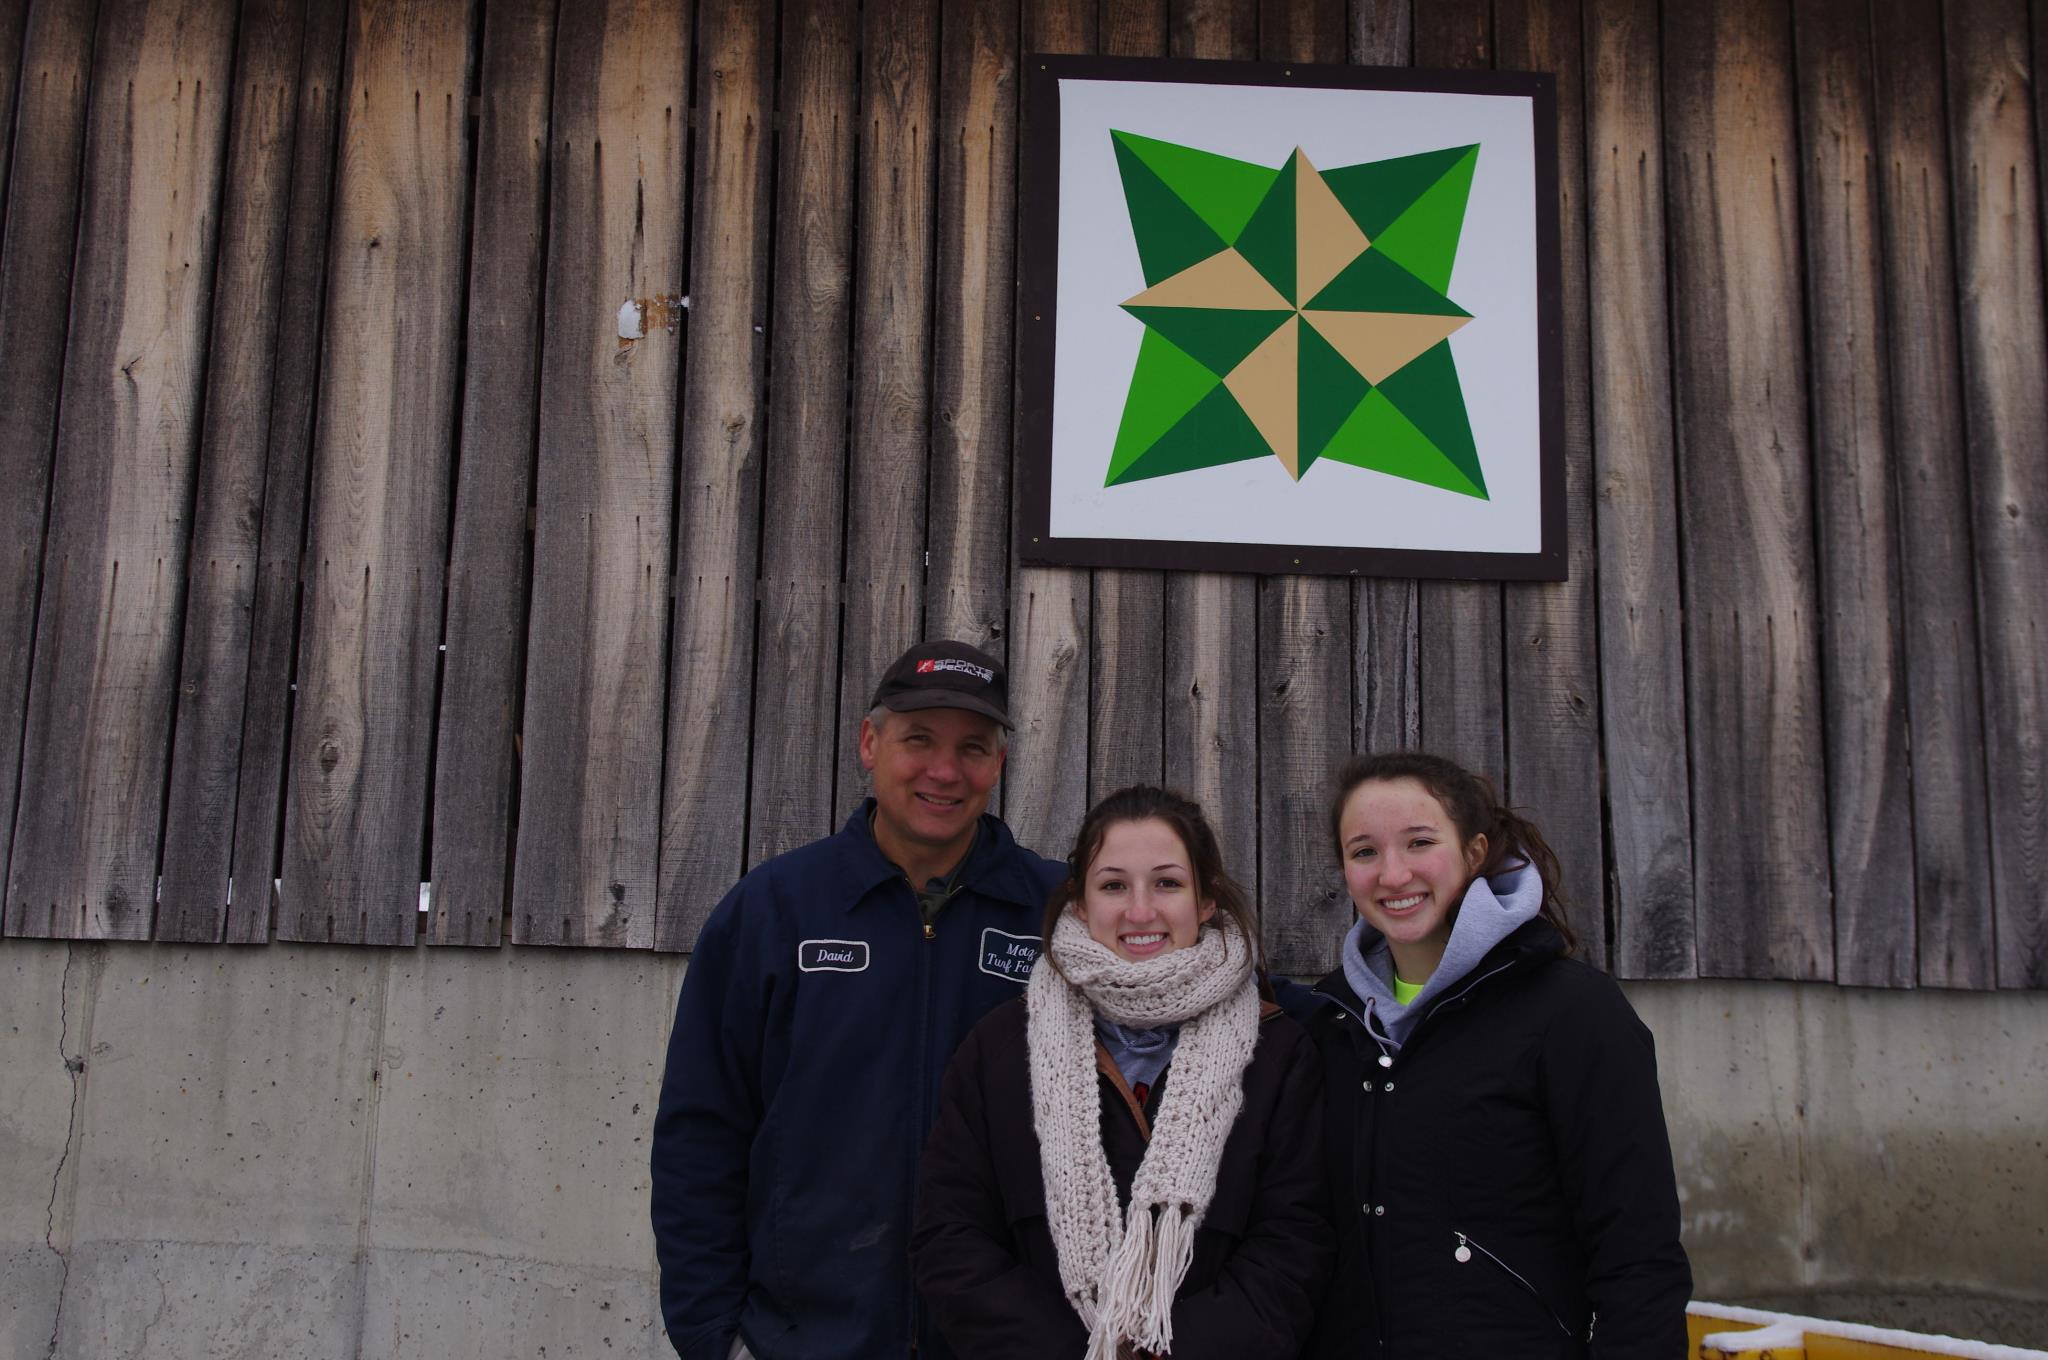 barn quilt, Motz Turf Farm, history of barn quilts